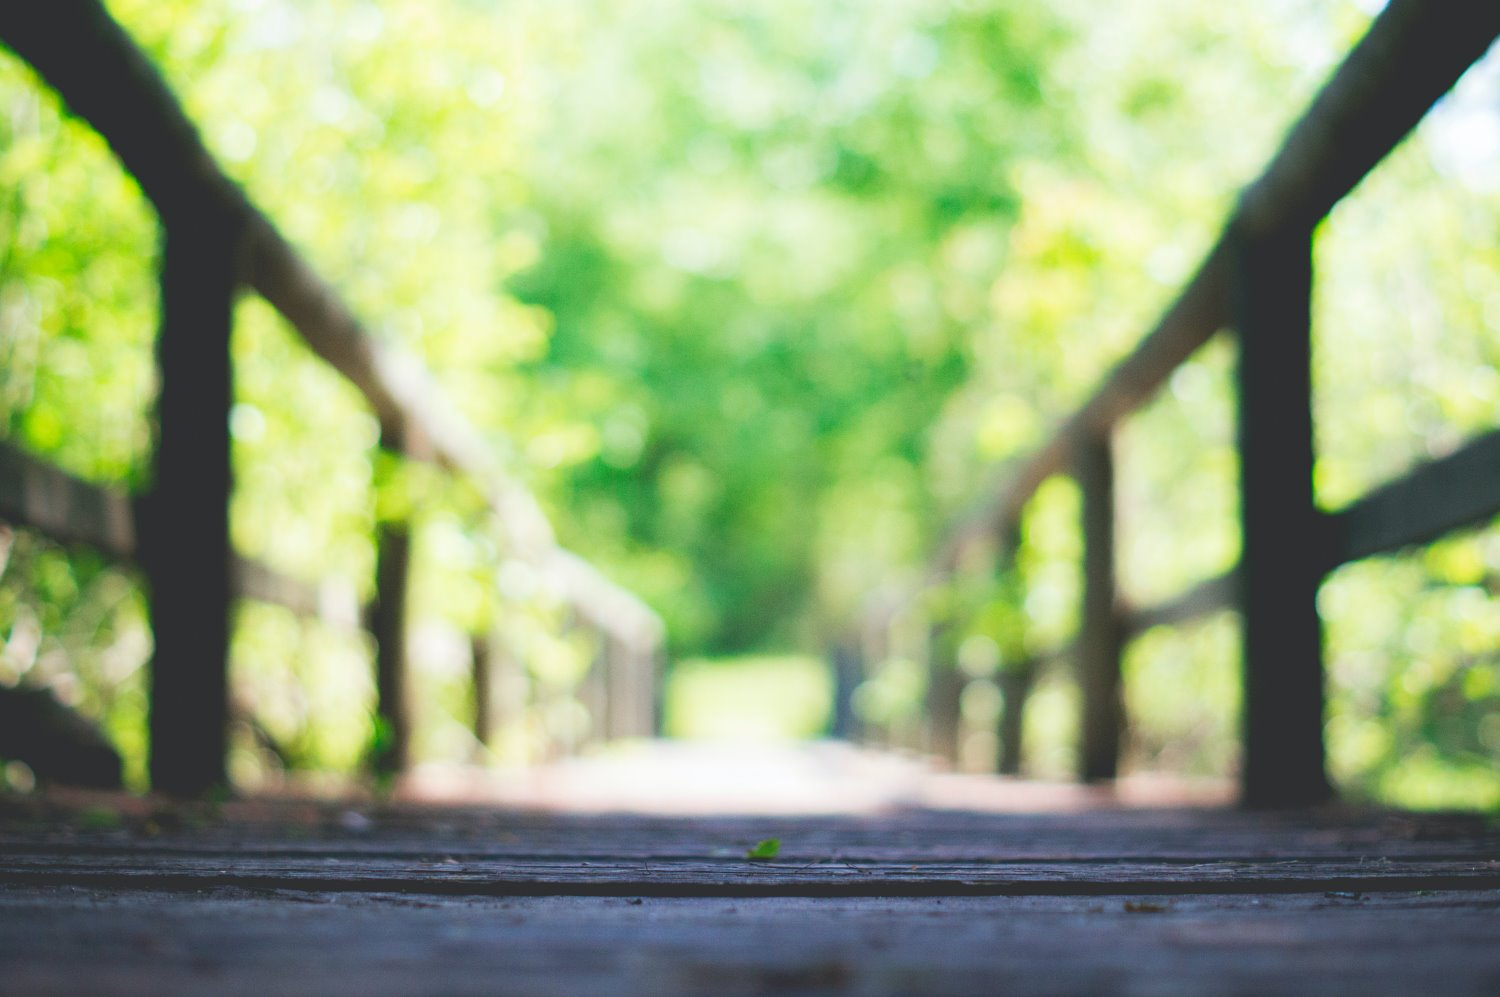 bridge stretching off with a shallow depth of field